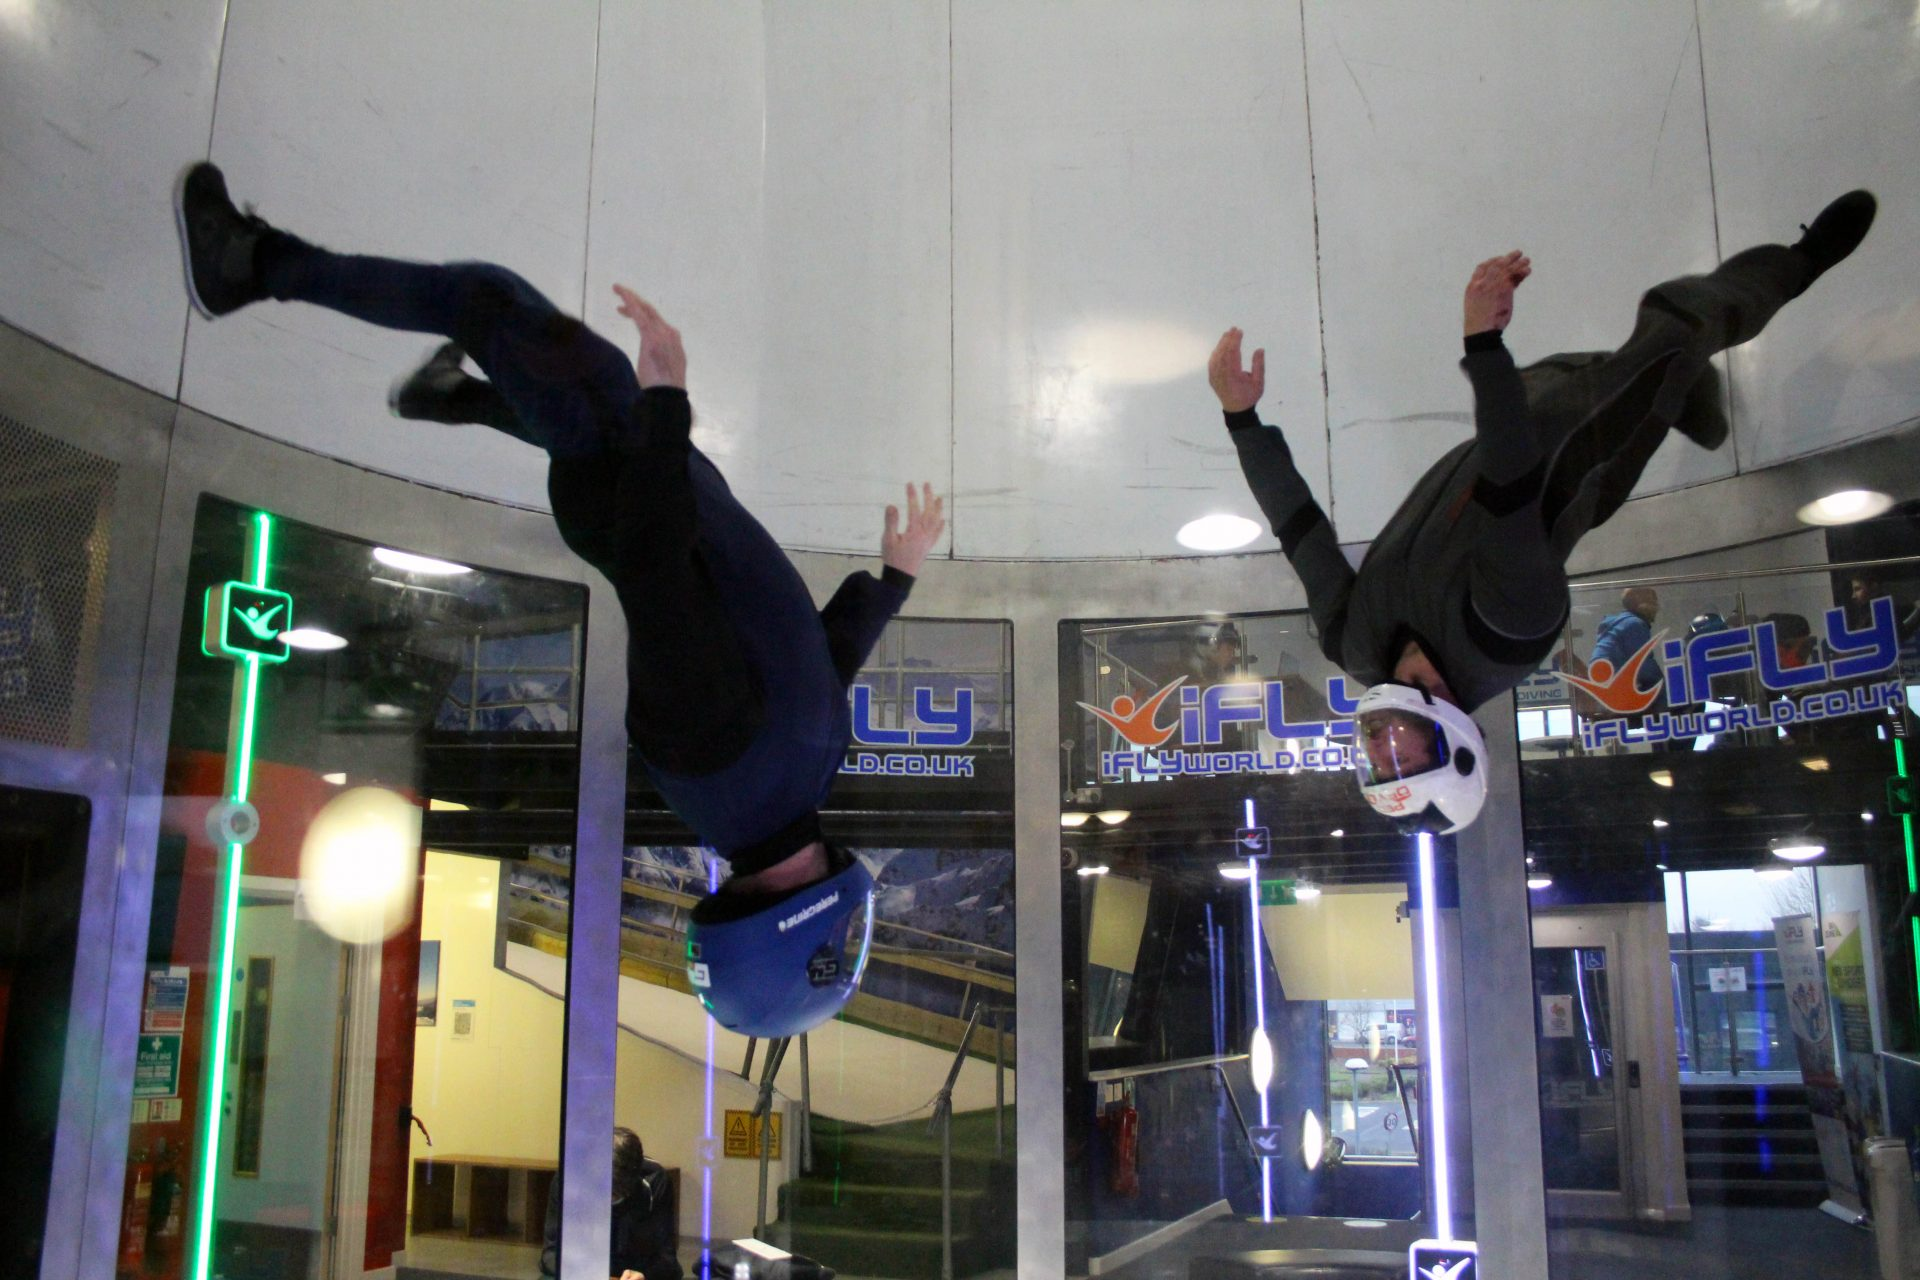 Wind tunnel flying